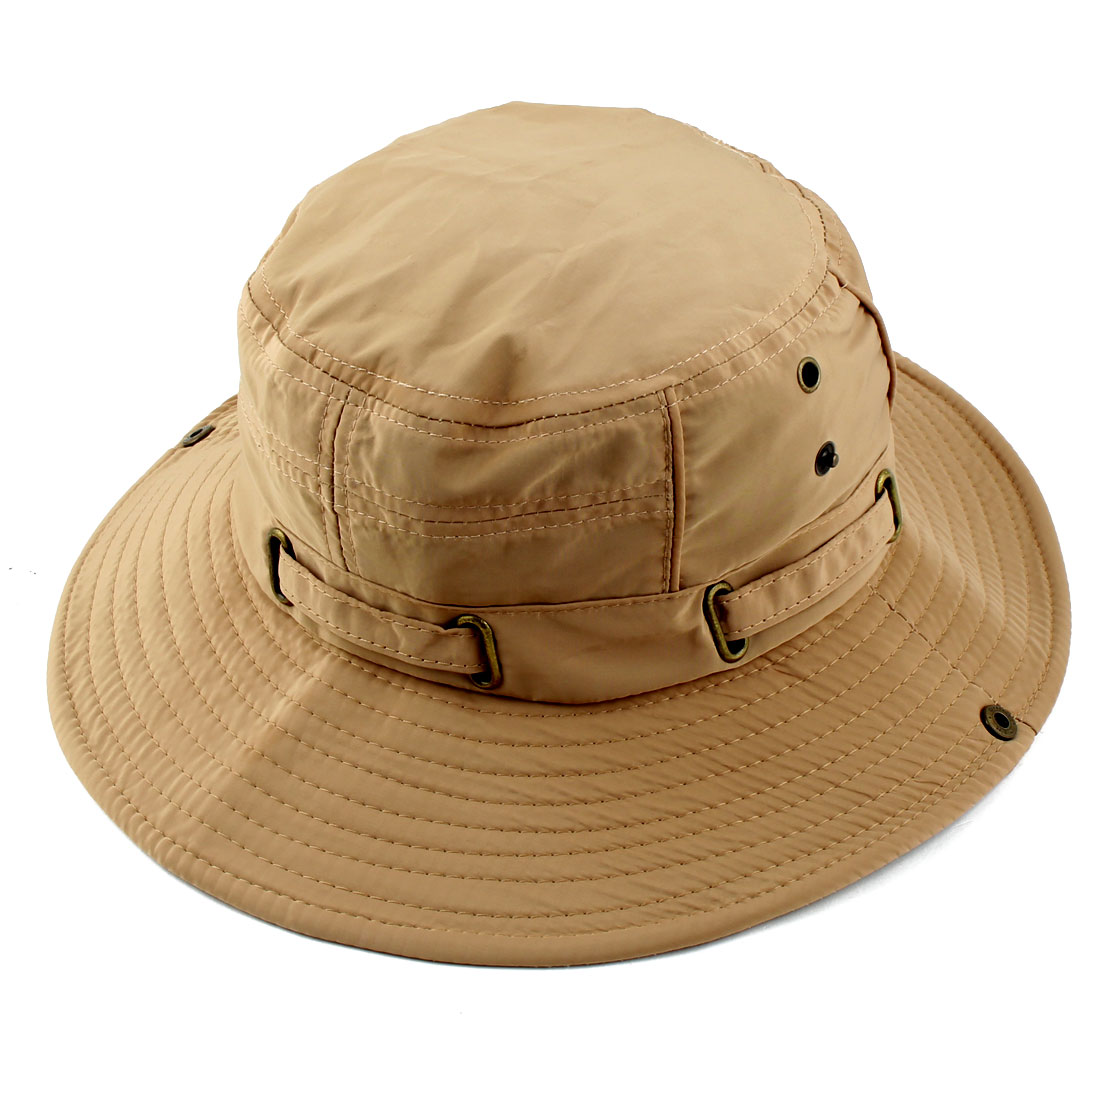 Fisherman Cotton Blends Outdoor Sports Mountaineering Hunting Adjustable Strap Wide Brim Bucket Summer Cap Fishing Hat Khaki